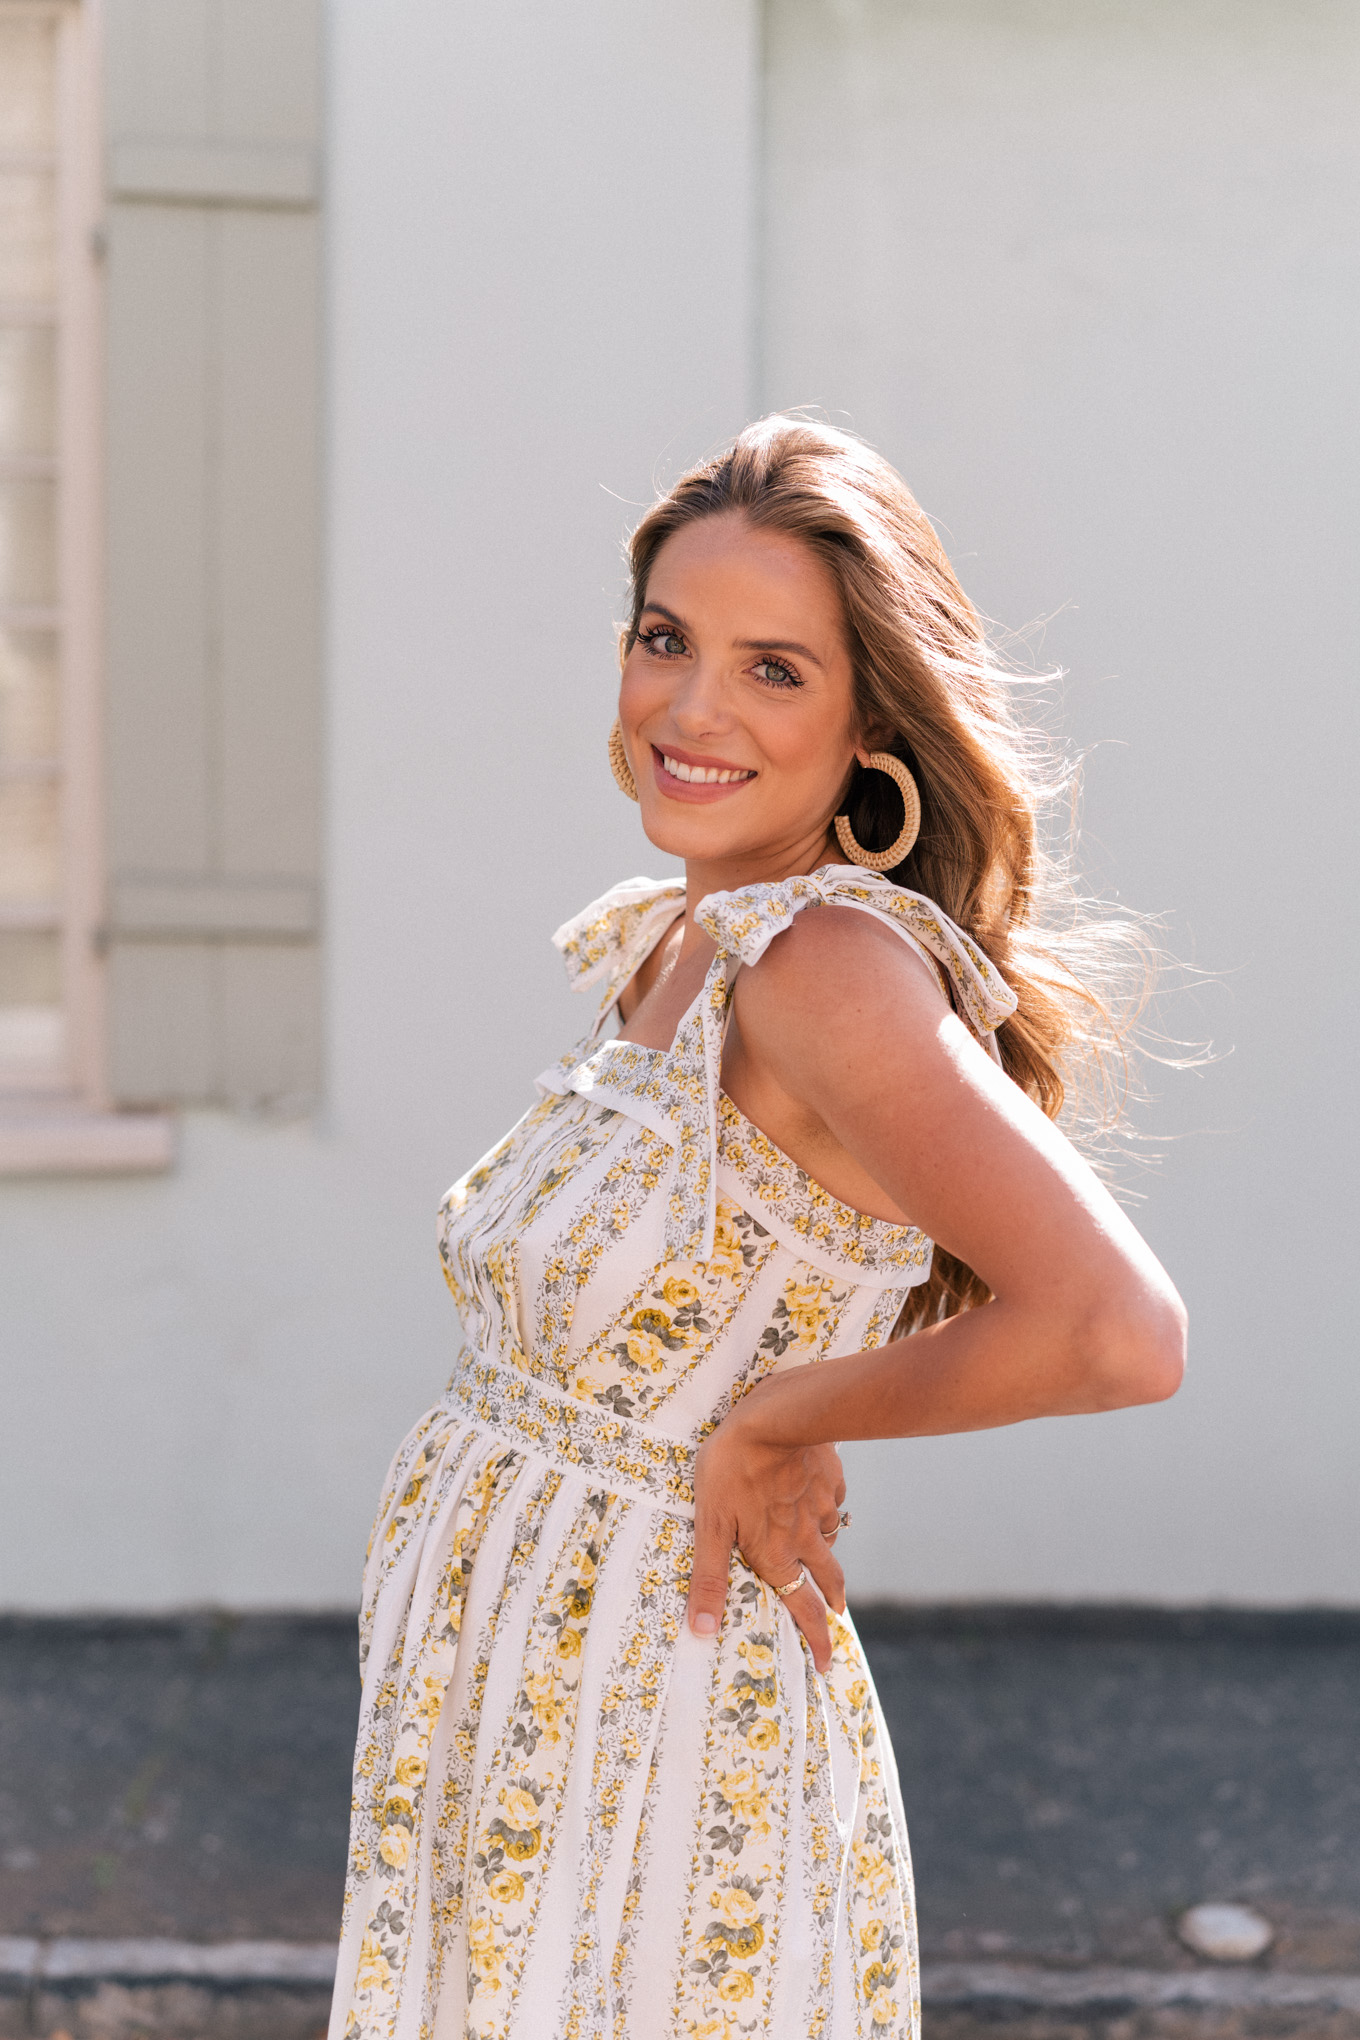 Gal Meets Glam A Charleston Based Style And Beauty Blog By Julia Engel